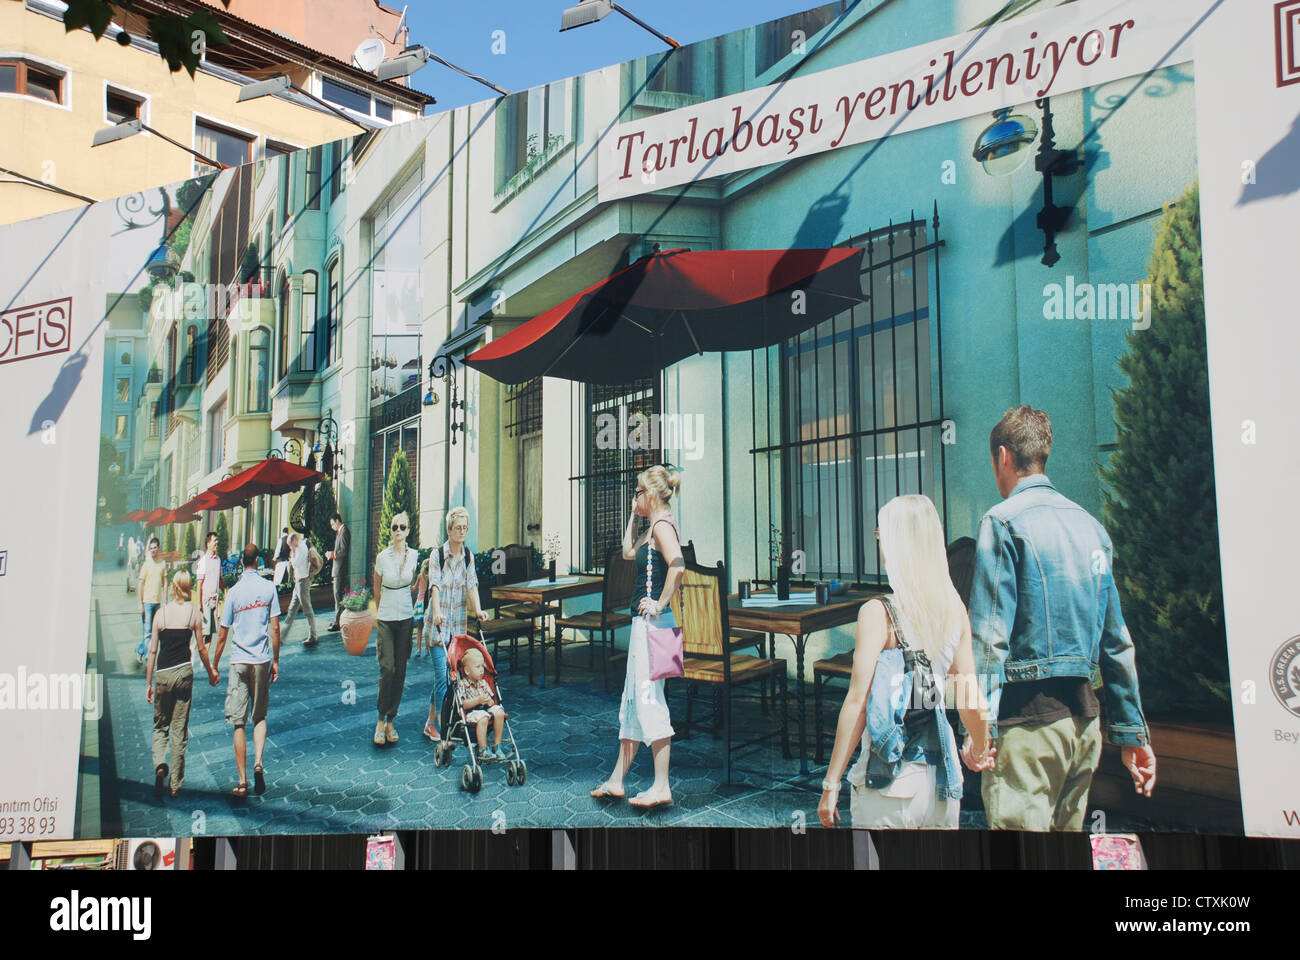 Giant posters on the edge of the soon-to-be gentrified Tarlabasi district of Istanbul show new residents as suspiciously - Stock Image